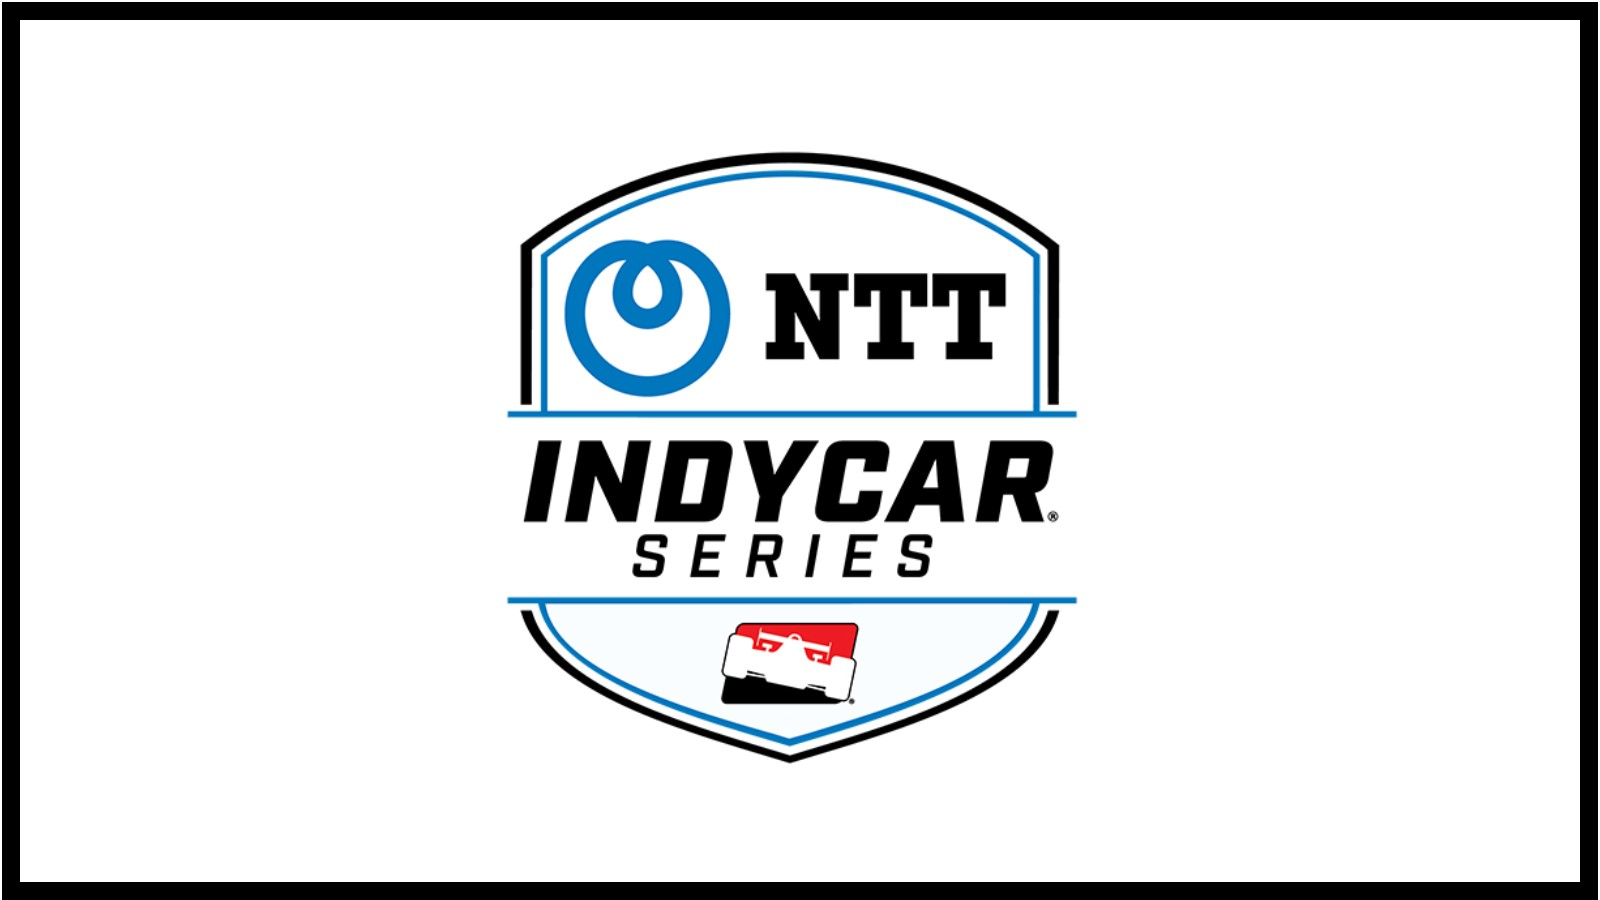 How to Watch '2020 IndyCar Series' Online - Stream All The Races